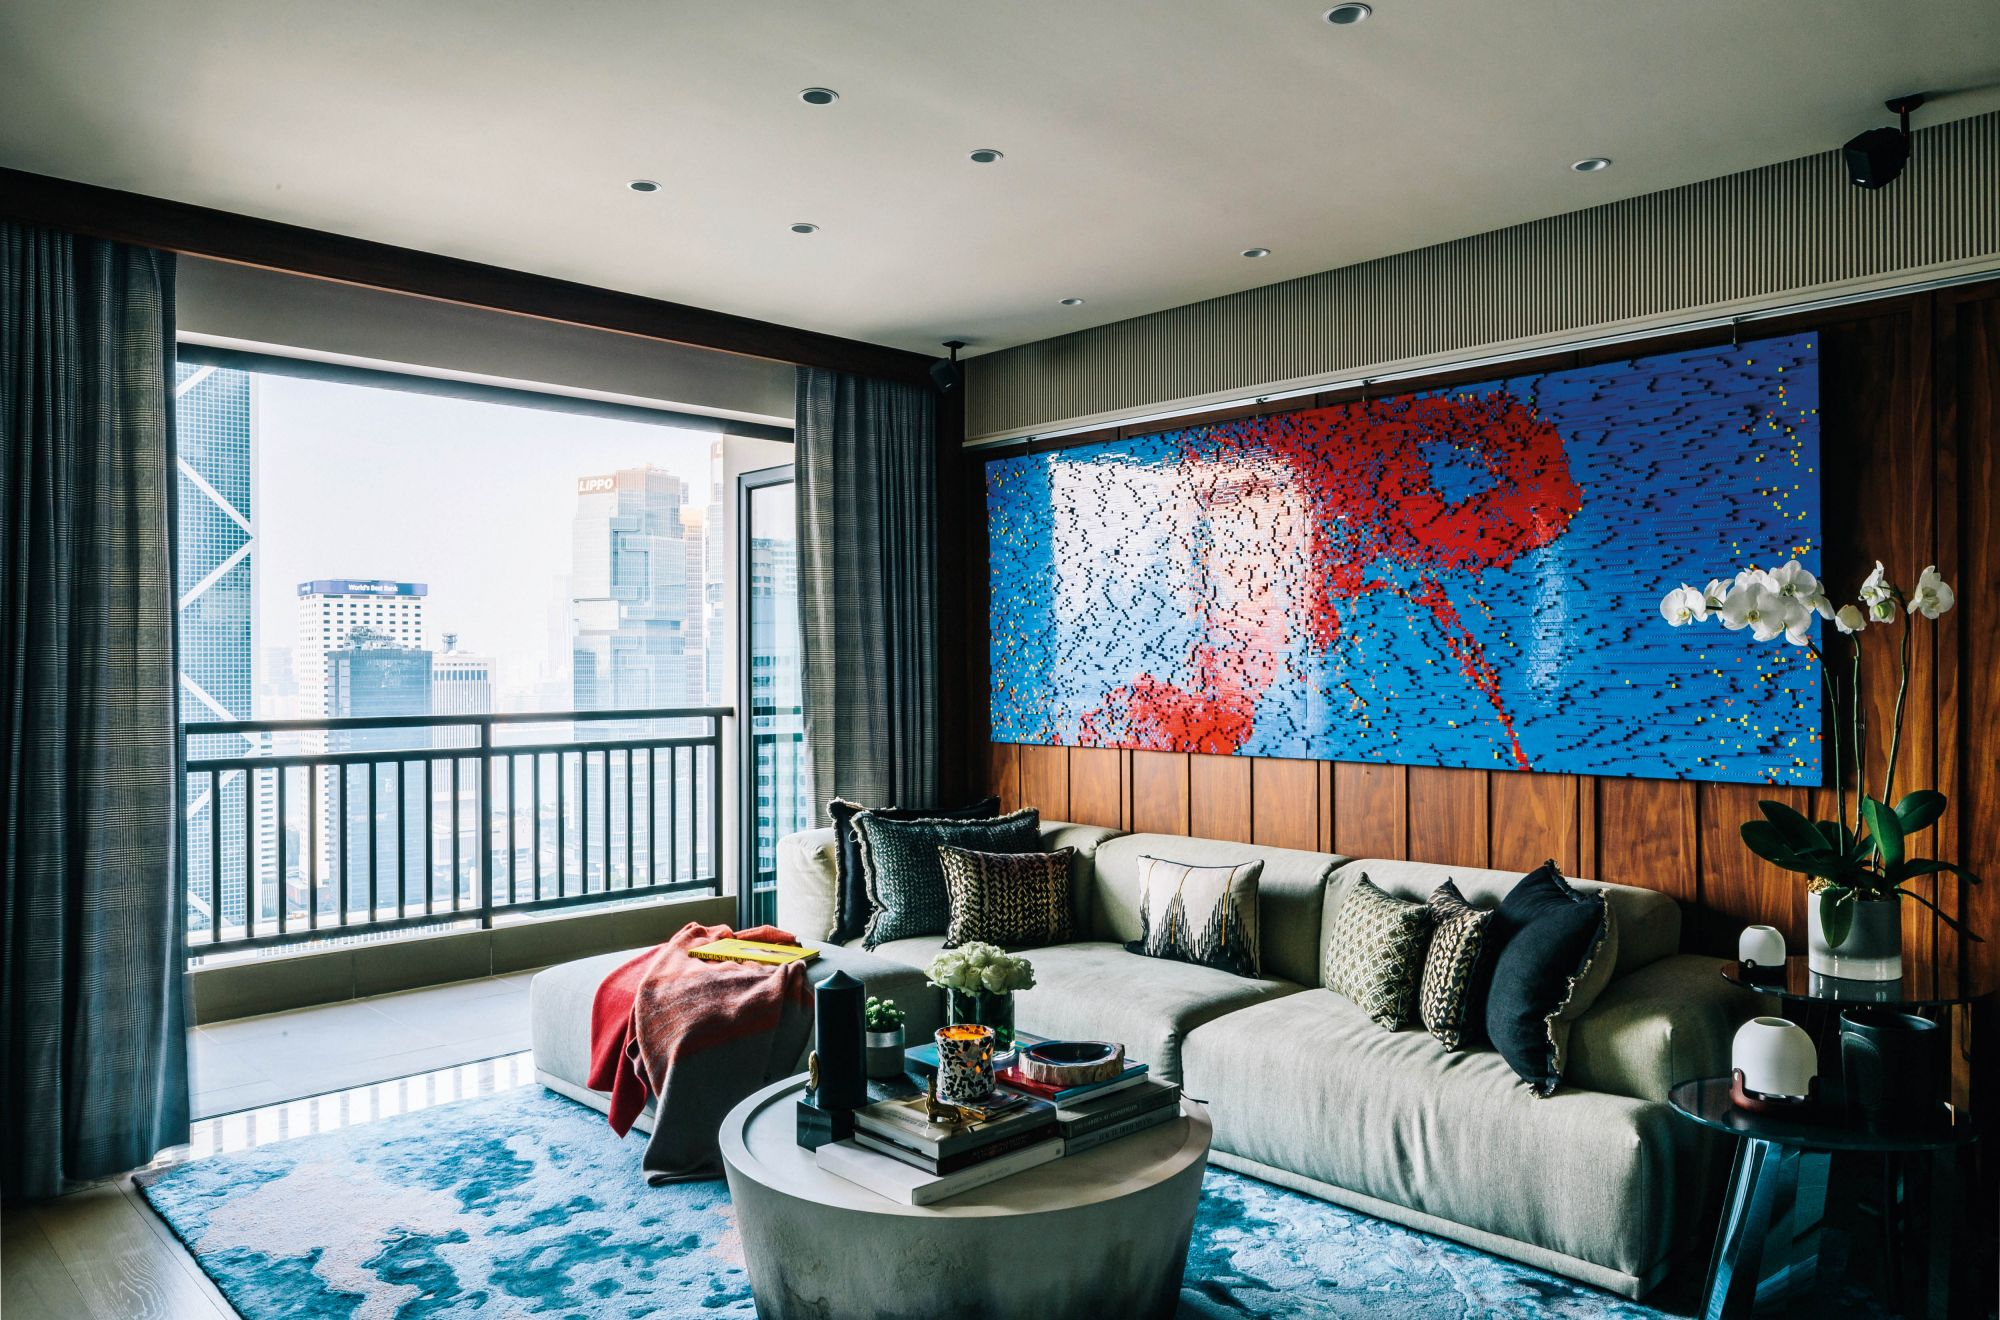 This Eclectic, Art-Filled Home In Mid-Levels Is A Work Of Art